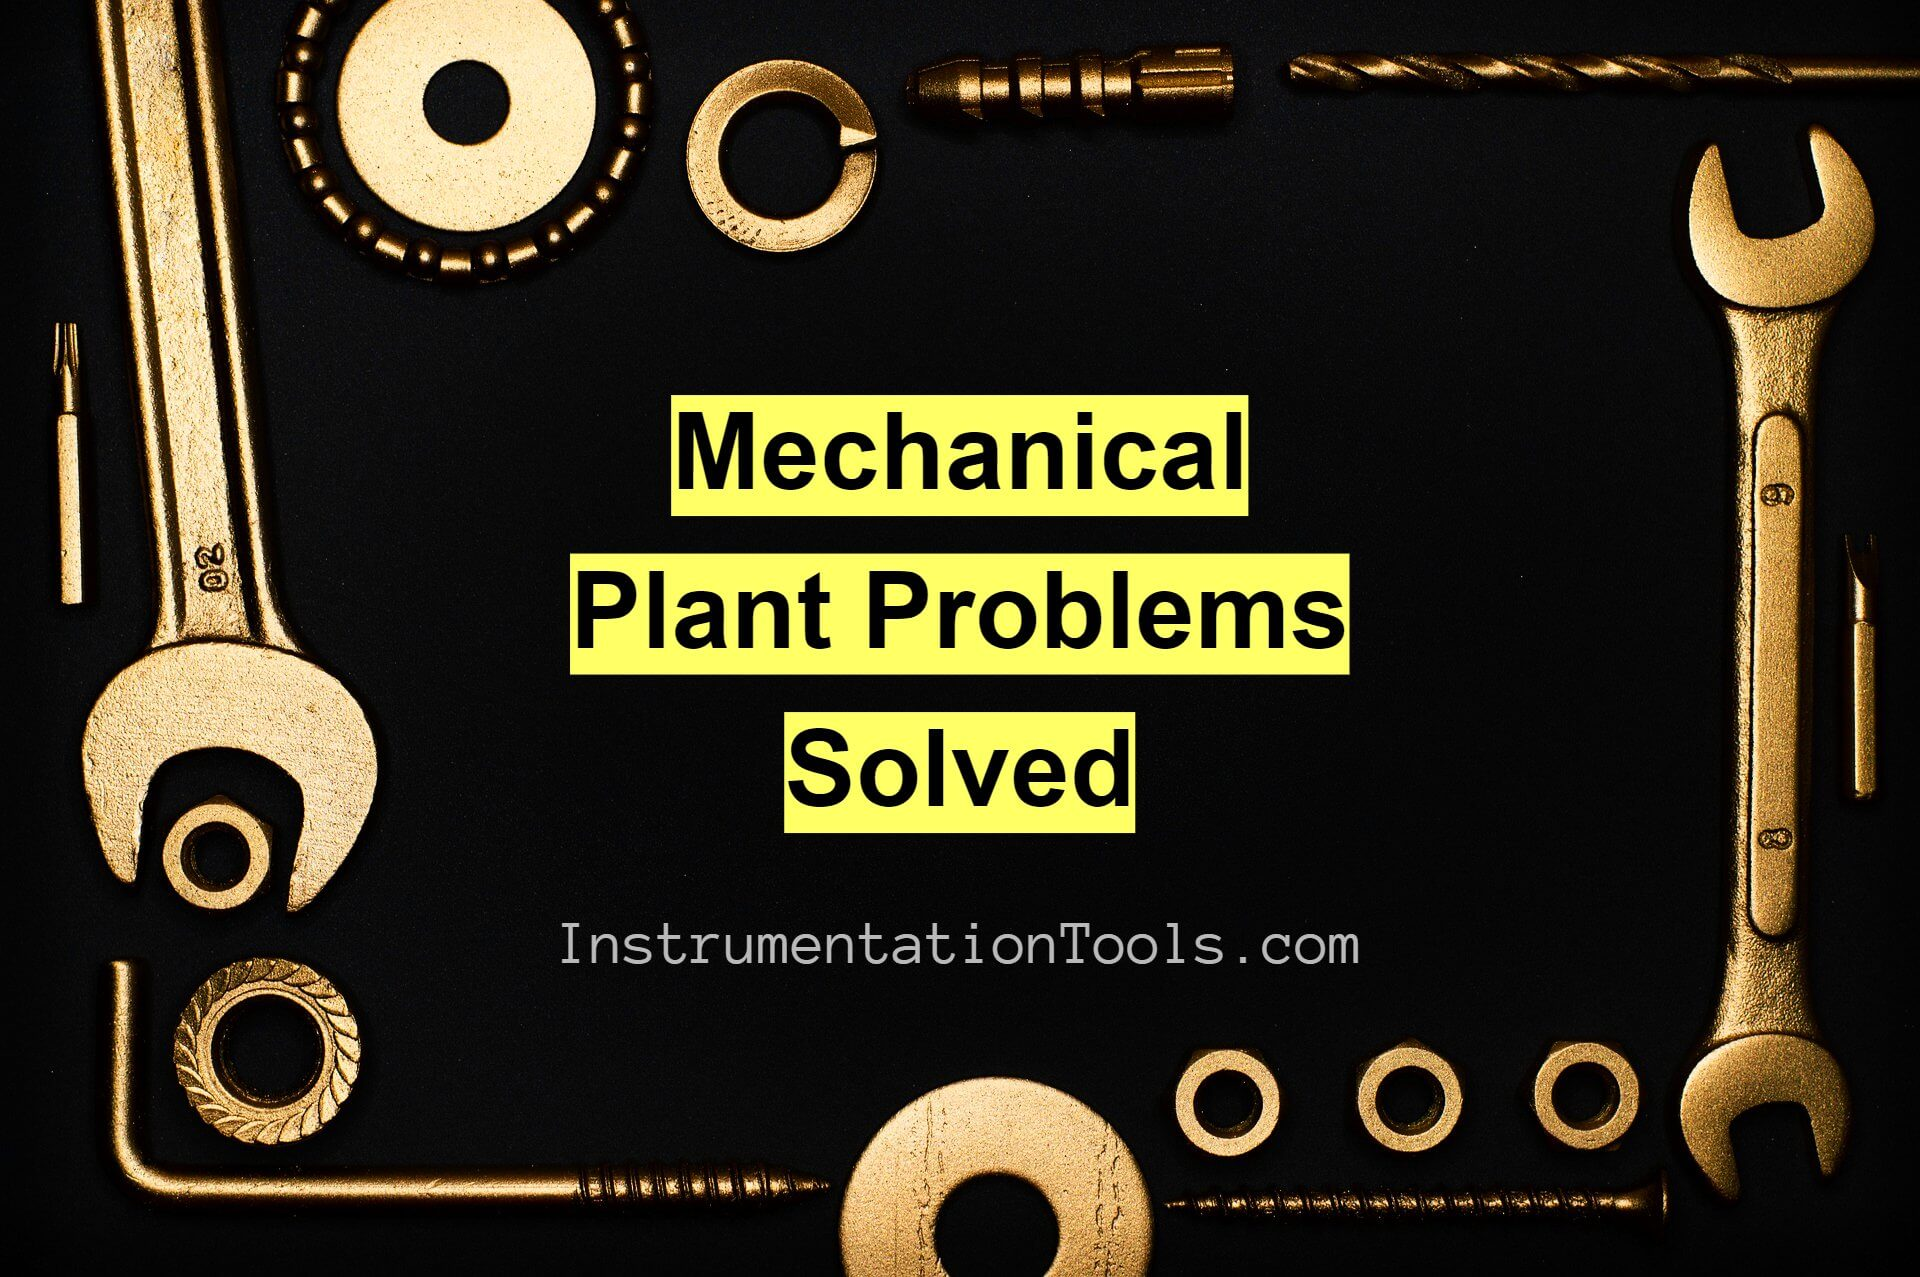 Mechanical Engineering Plant Problems Solved